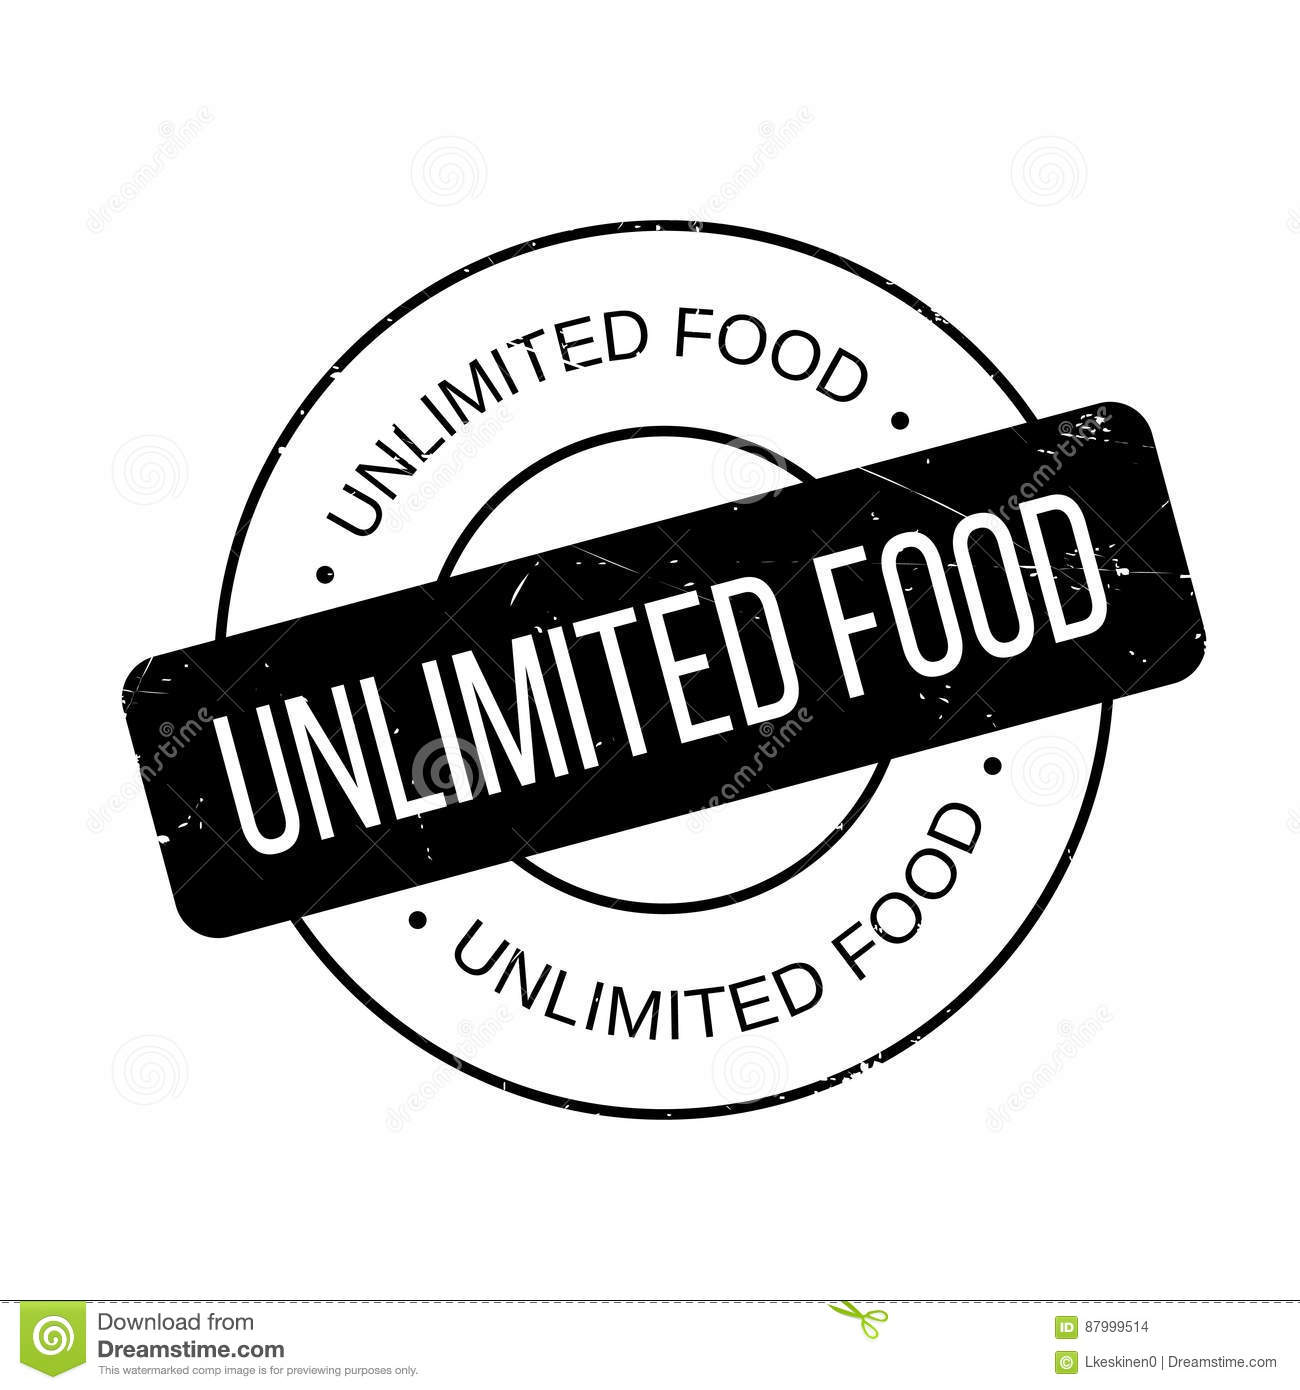 Unlimited Food Rubber Stamp Stock Photo - Image: 87999514